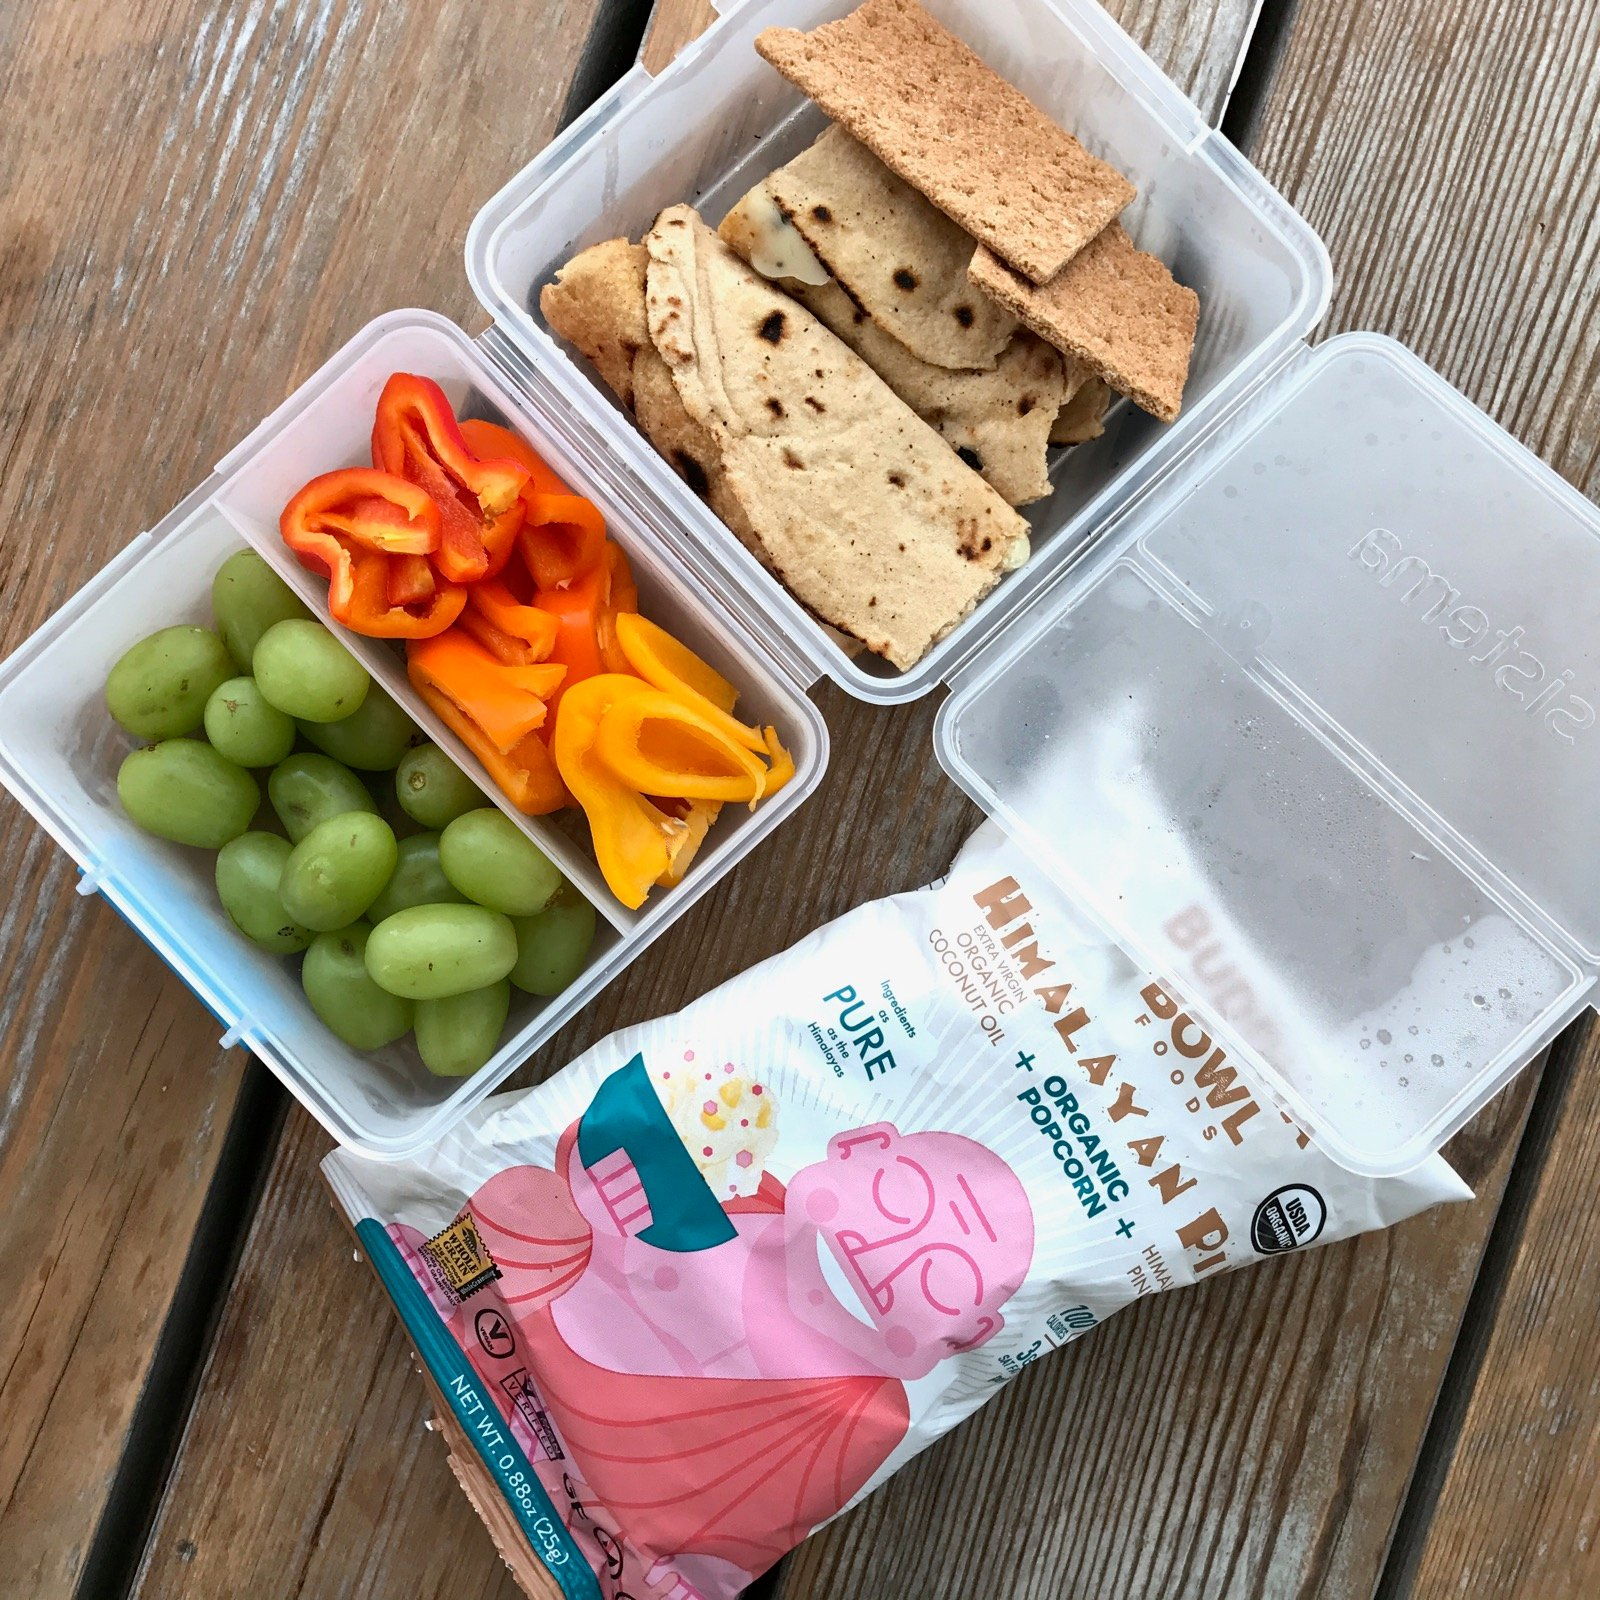 Packed school lunch of Cheese melted in a whole-wheat tortilla, 2 whole-wheat cinnamon graham crackers, Sliced bell peppers, Grapes, Bag of popcorn